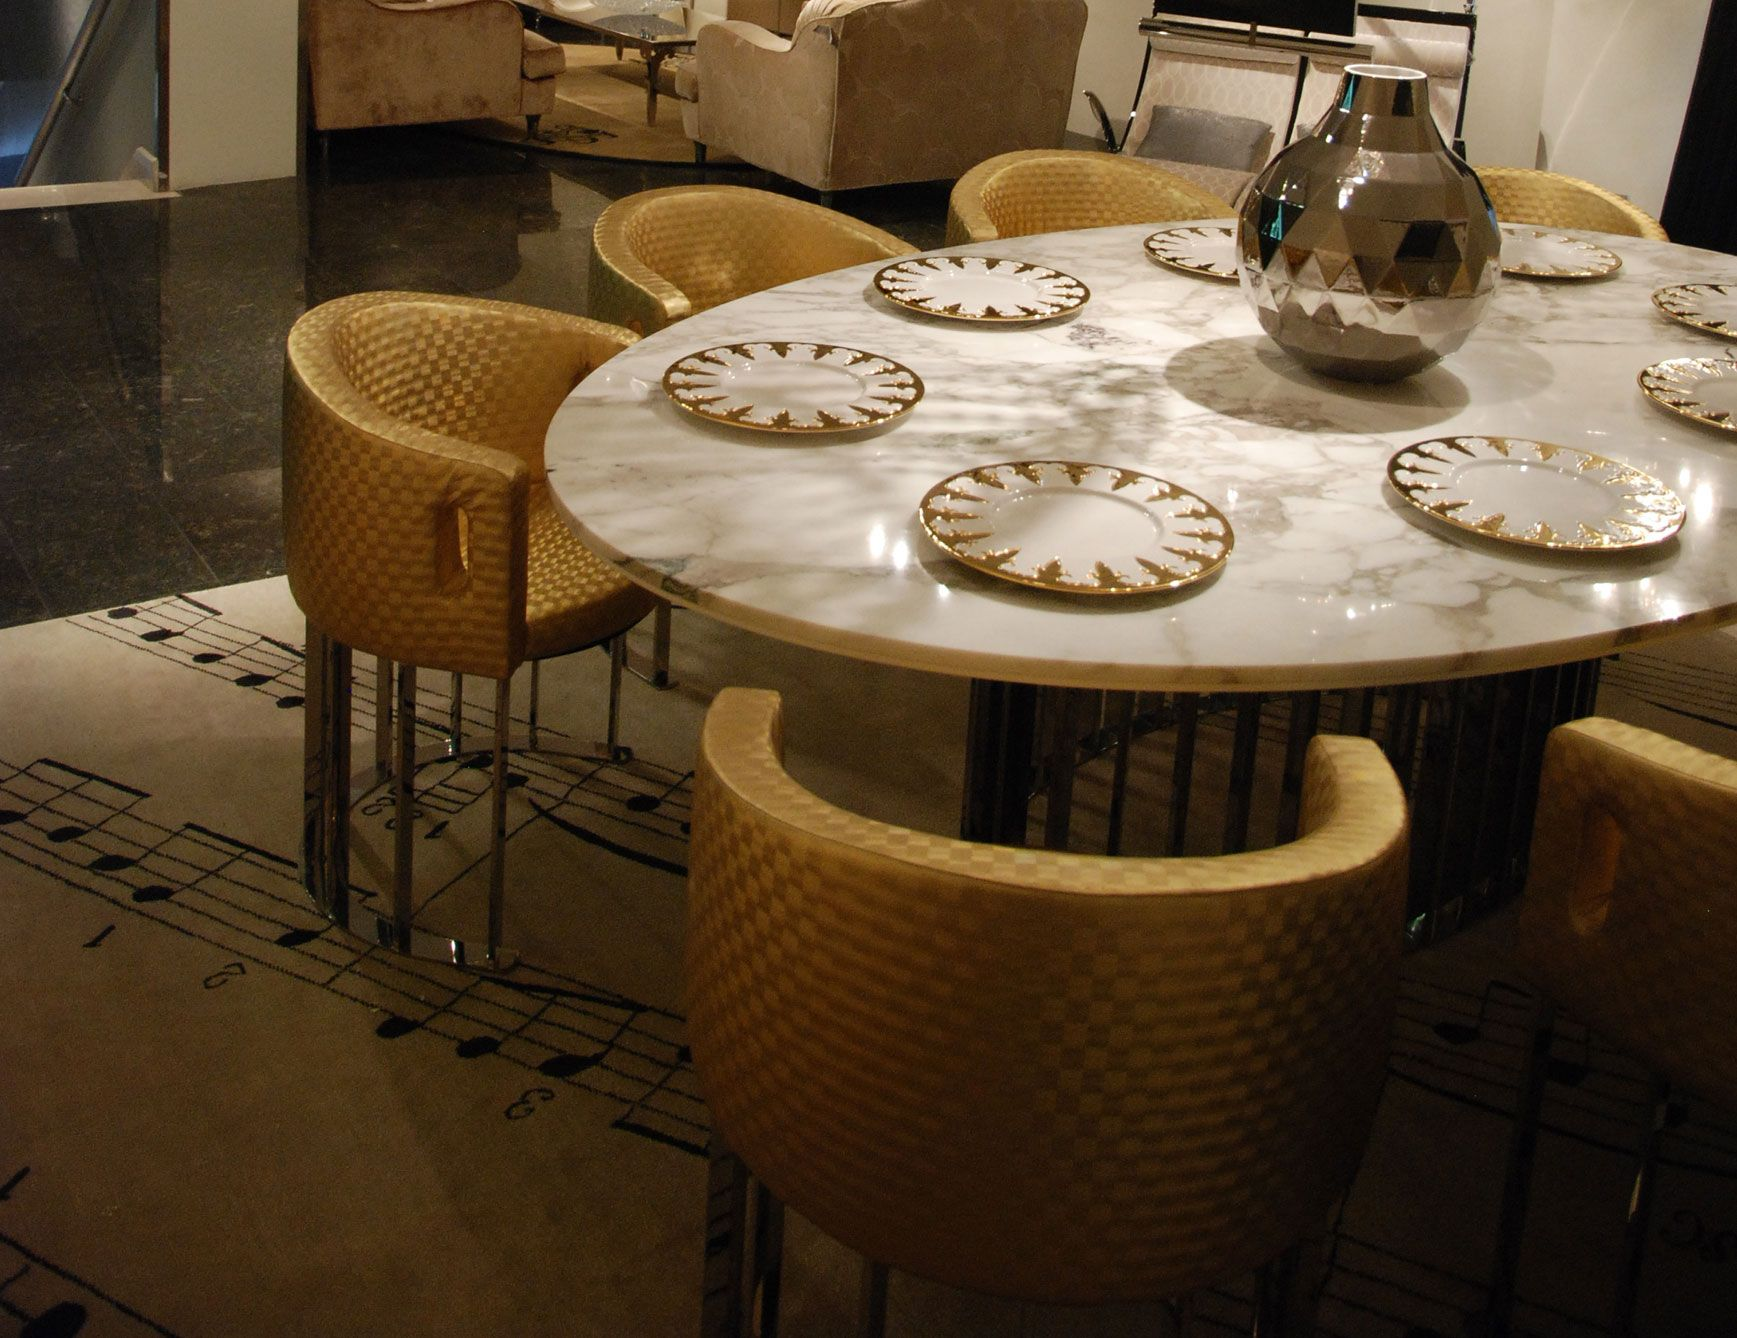 Tilmun Luxury Italian Dining Table Shown With A Marble Calacatta